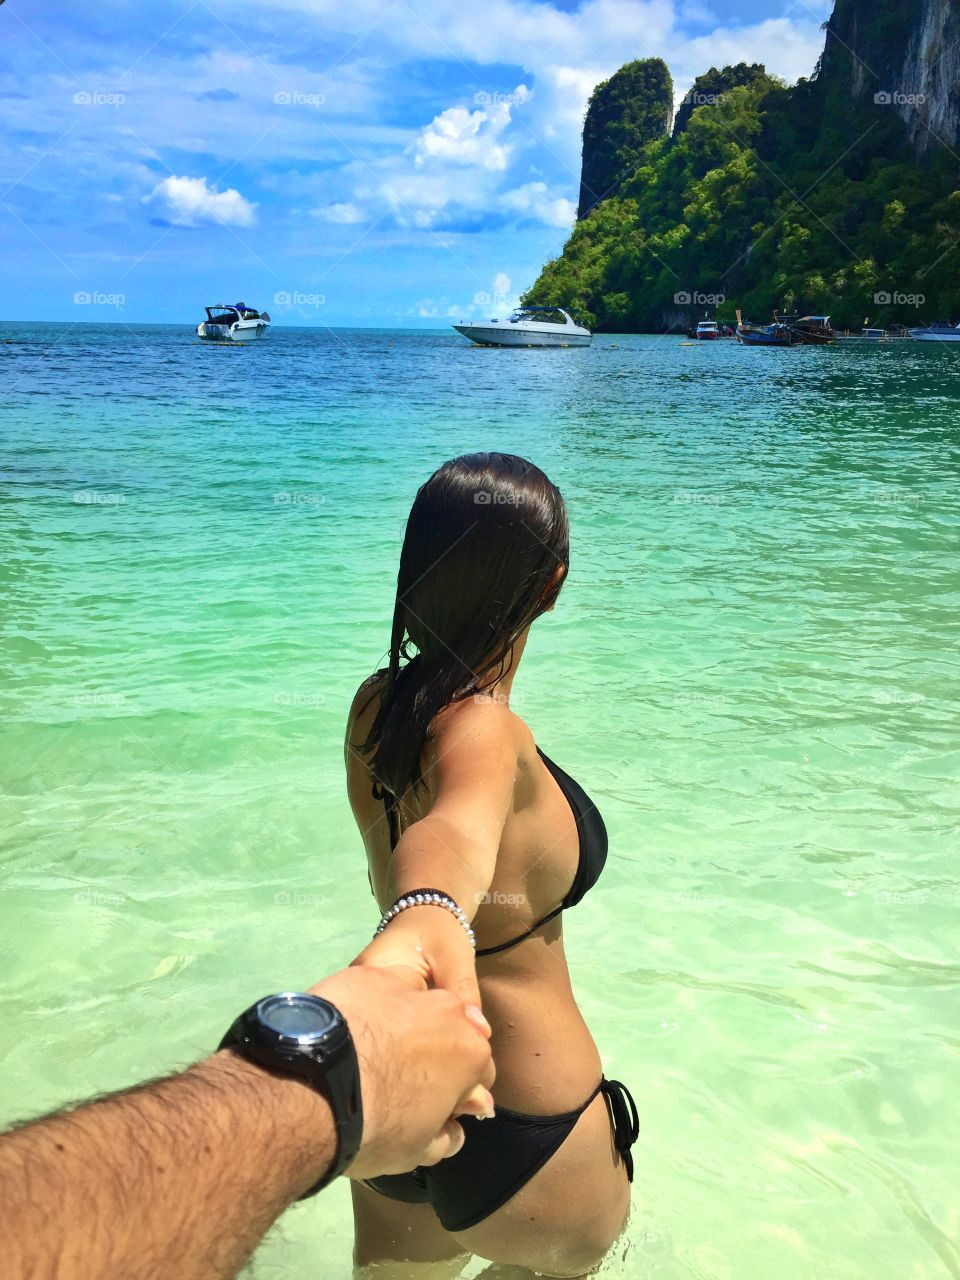 Thailand with my love . On a beautiful island at the beach